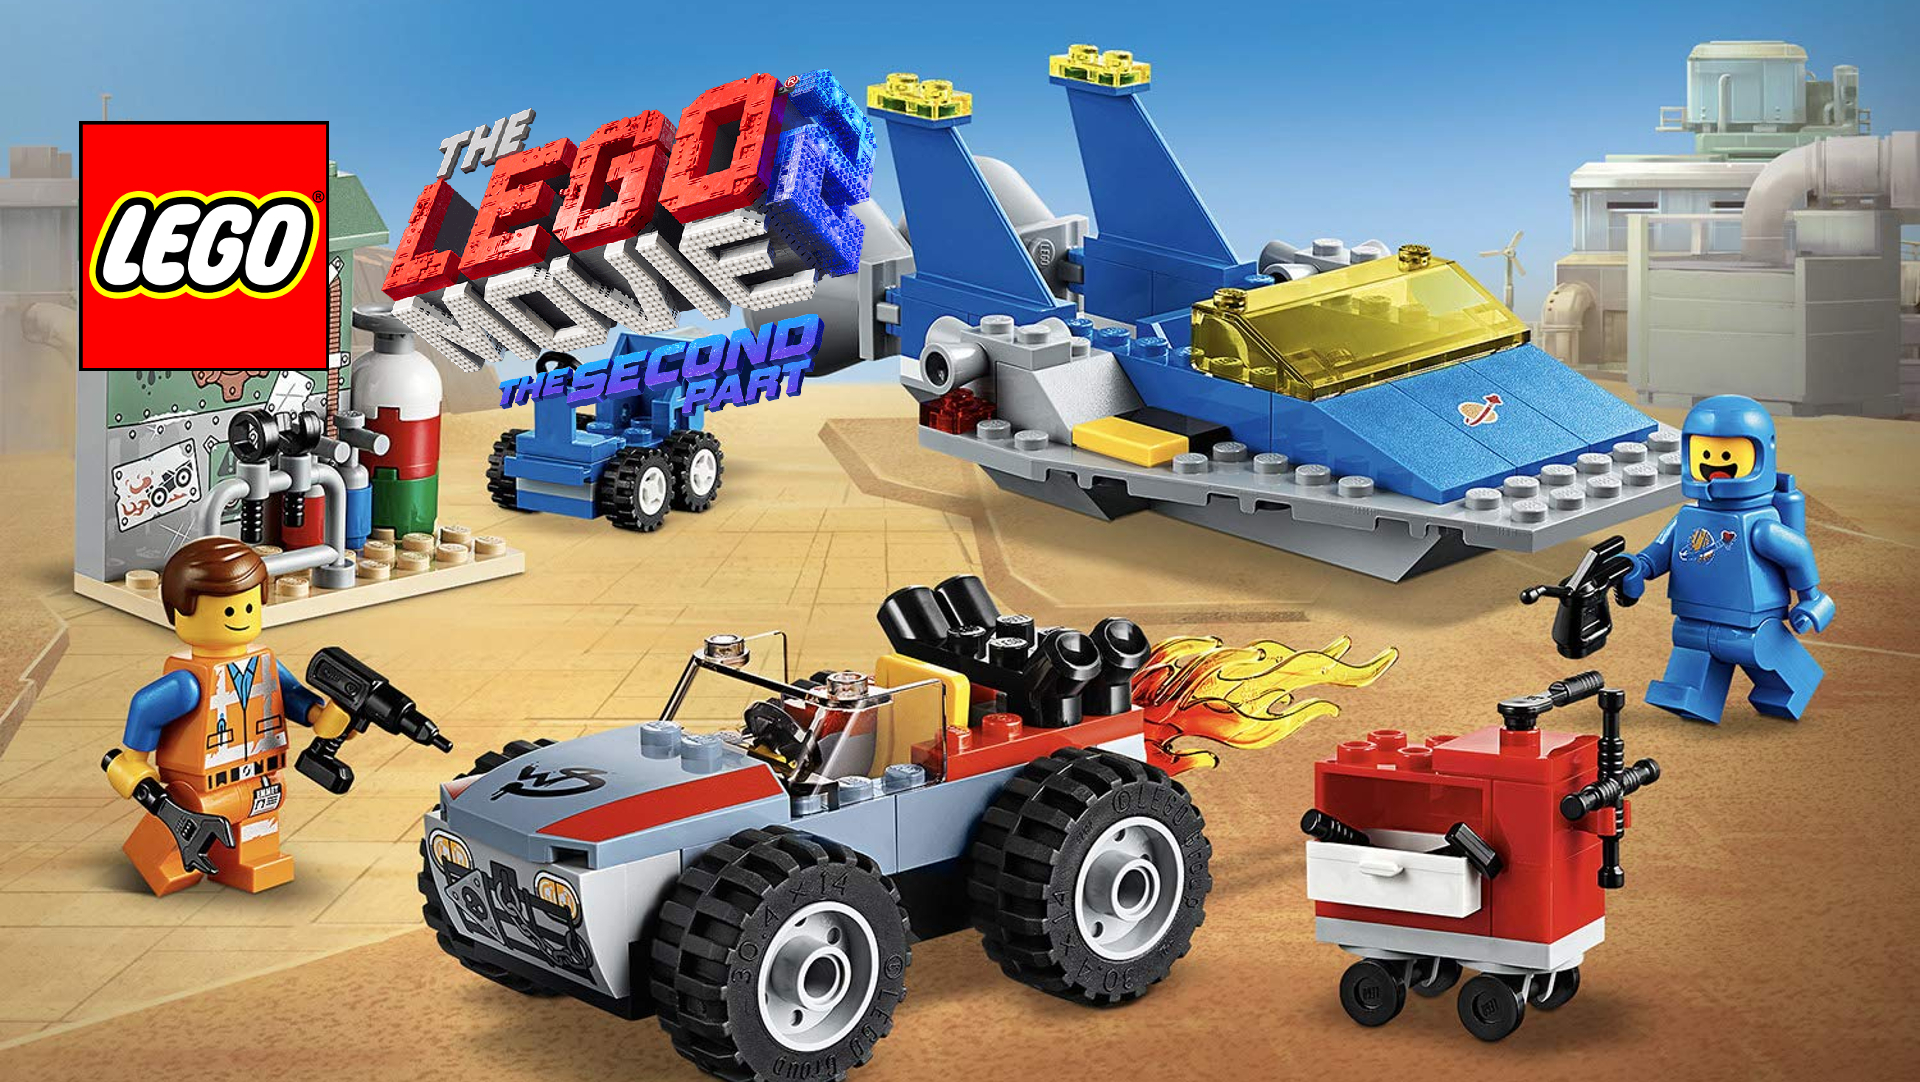 Review The Lego Movie 2 Emmet And Bennys Build And Fix